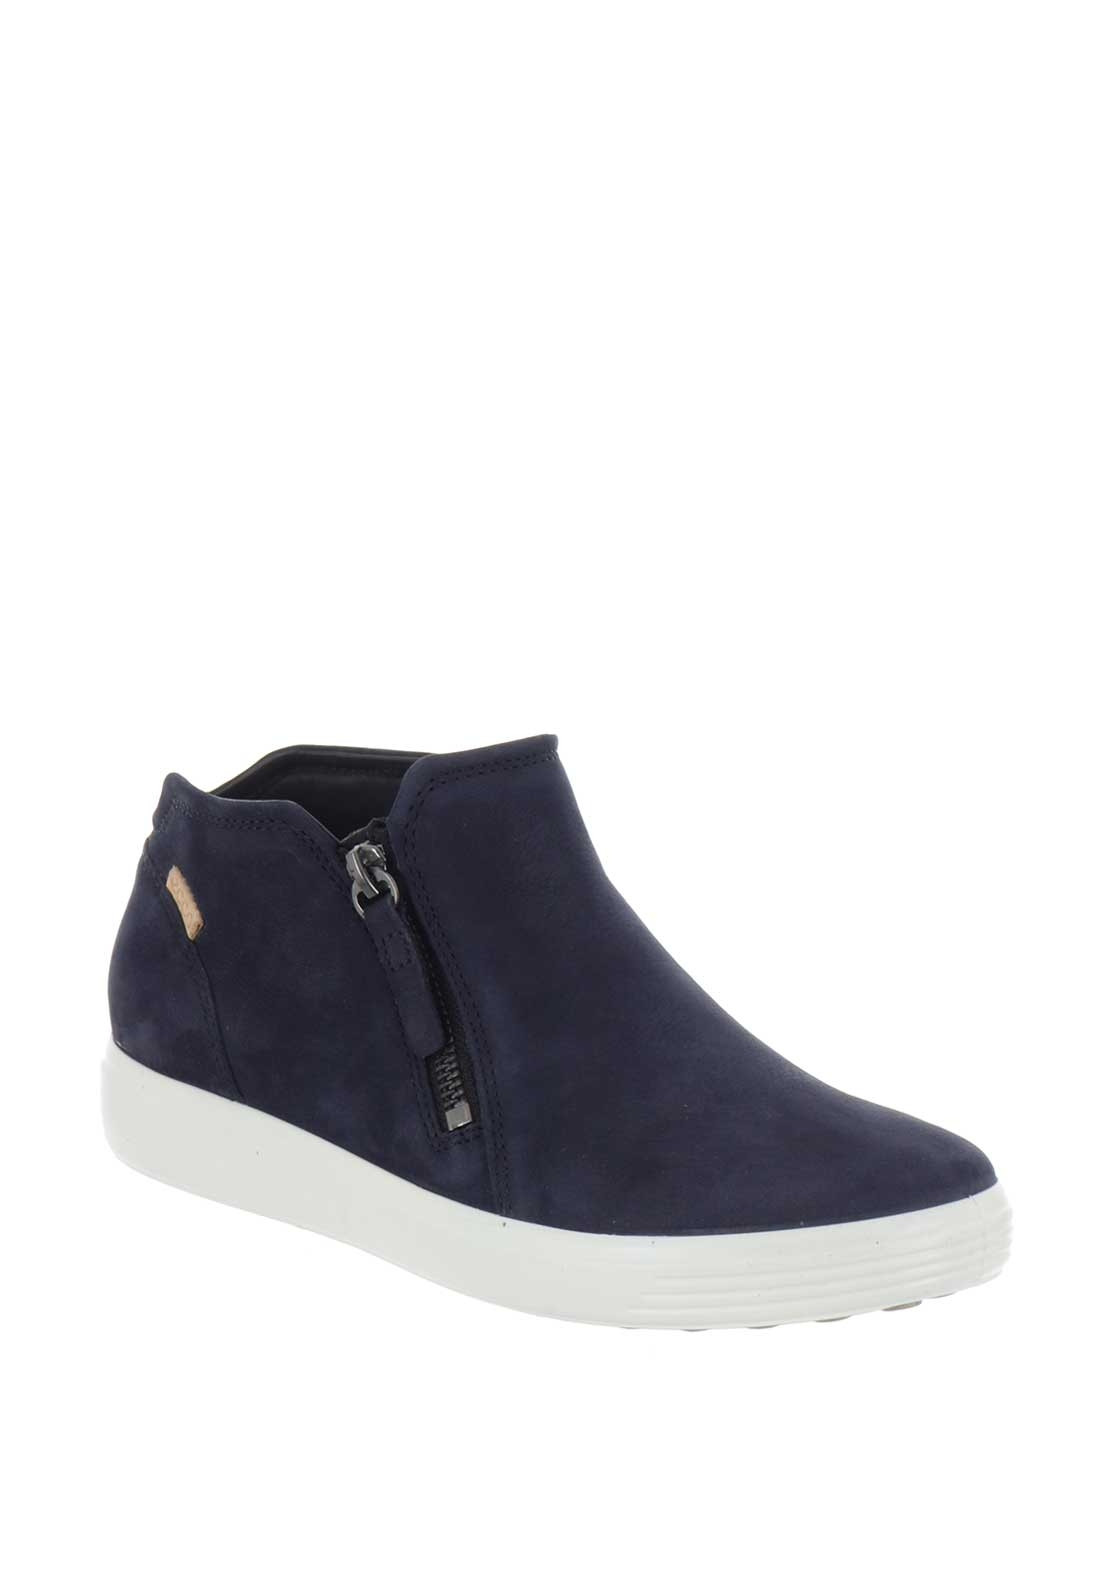 9e87d127e2859 Ecco Womens Soft 7 Leather Ankle Boots, Navy. Be the first to review this  product